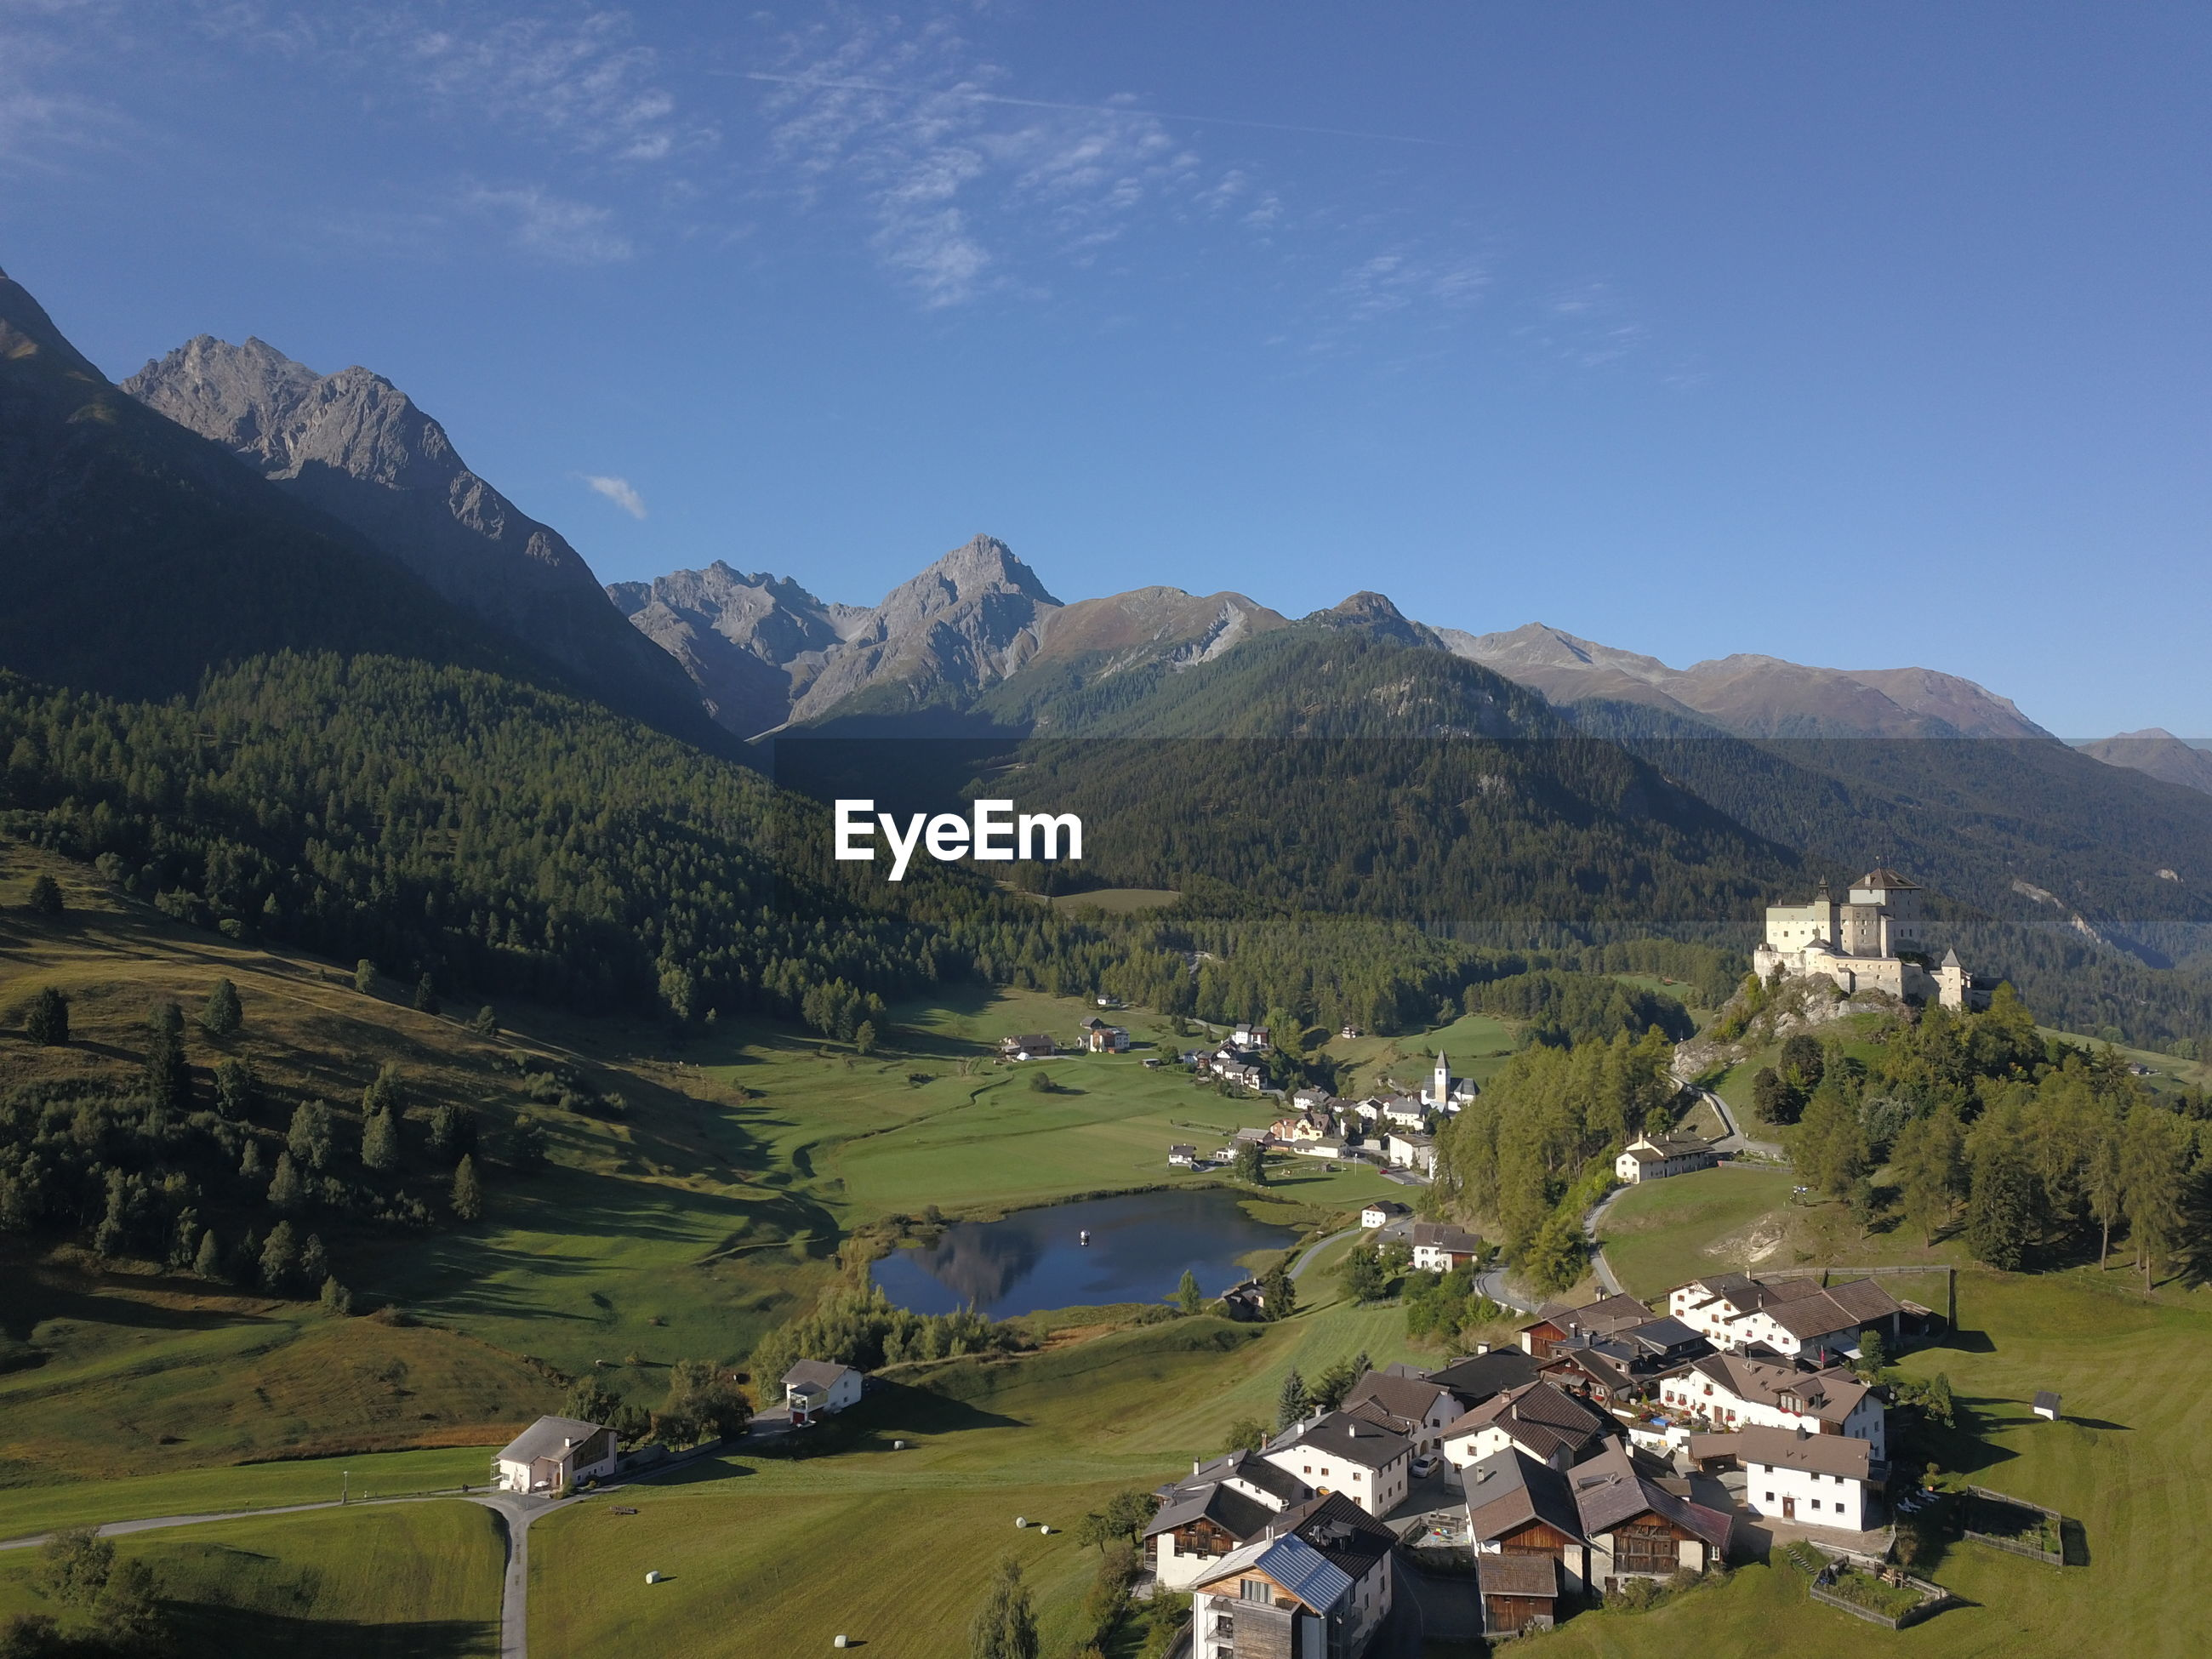 PANORAMIC VIEW OF TOWNSCAPE AGAINST MOUNTAINS